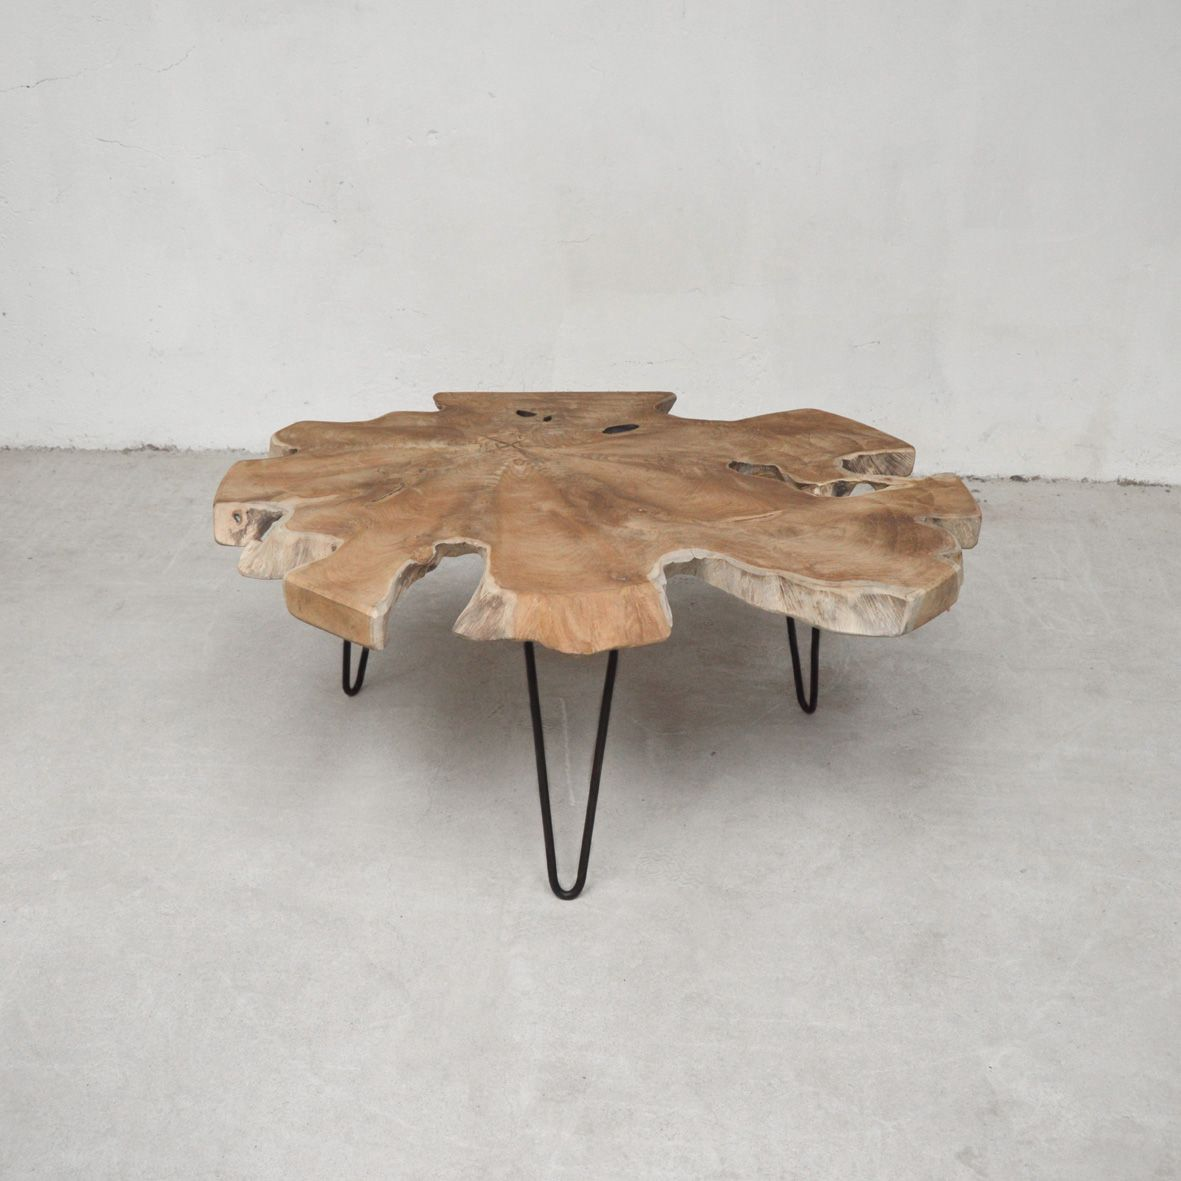 Antique Teak Coffee Table: Vintage Teak Coffee Table For Sale At Pamono